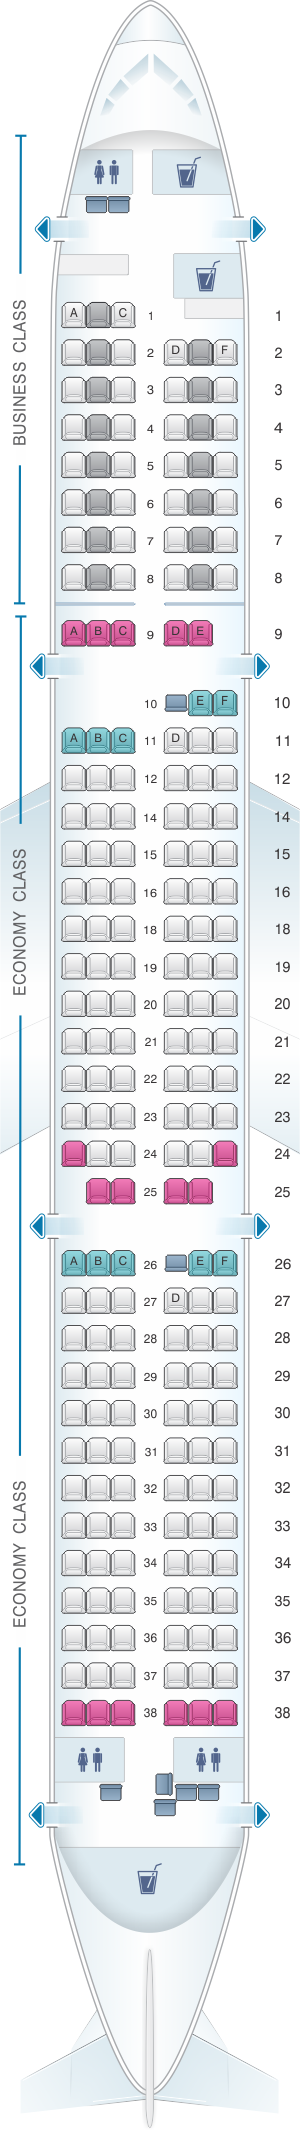 Seat map for Lufthansa Airbus A321